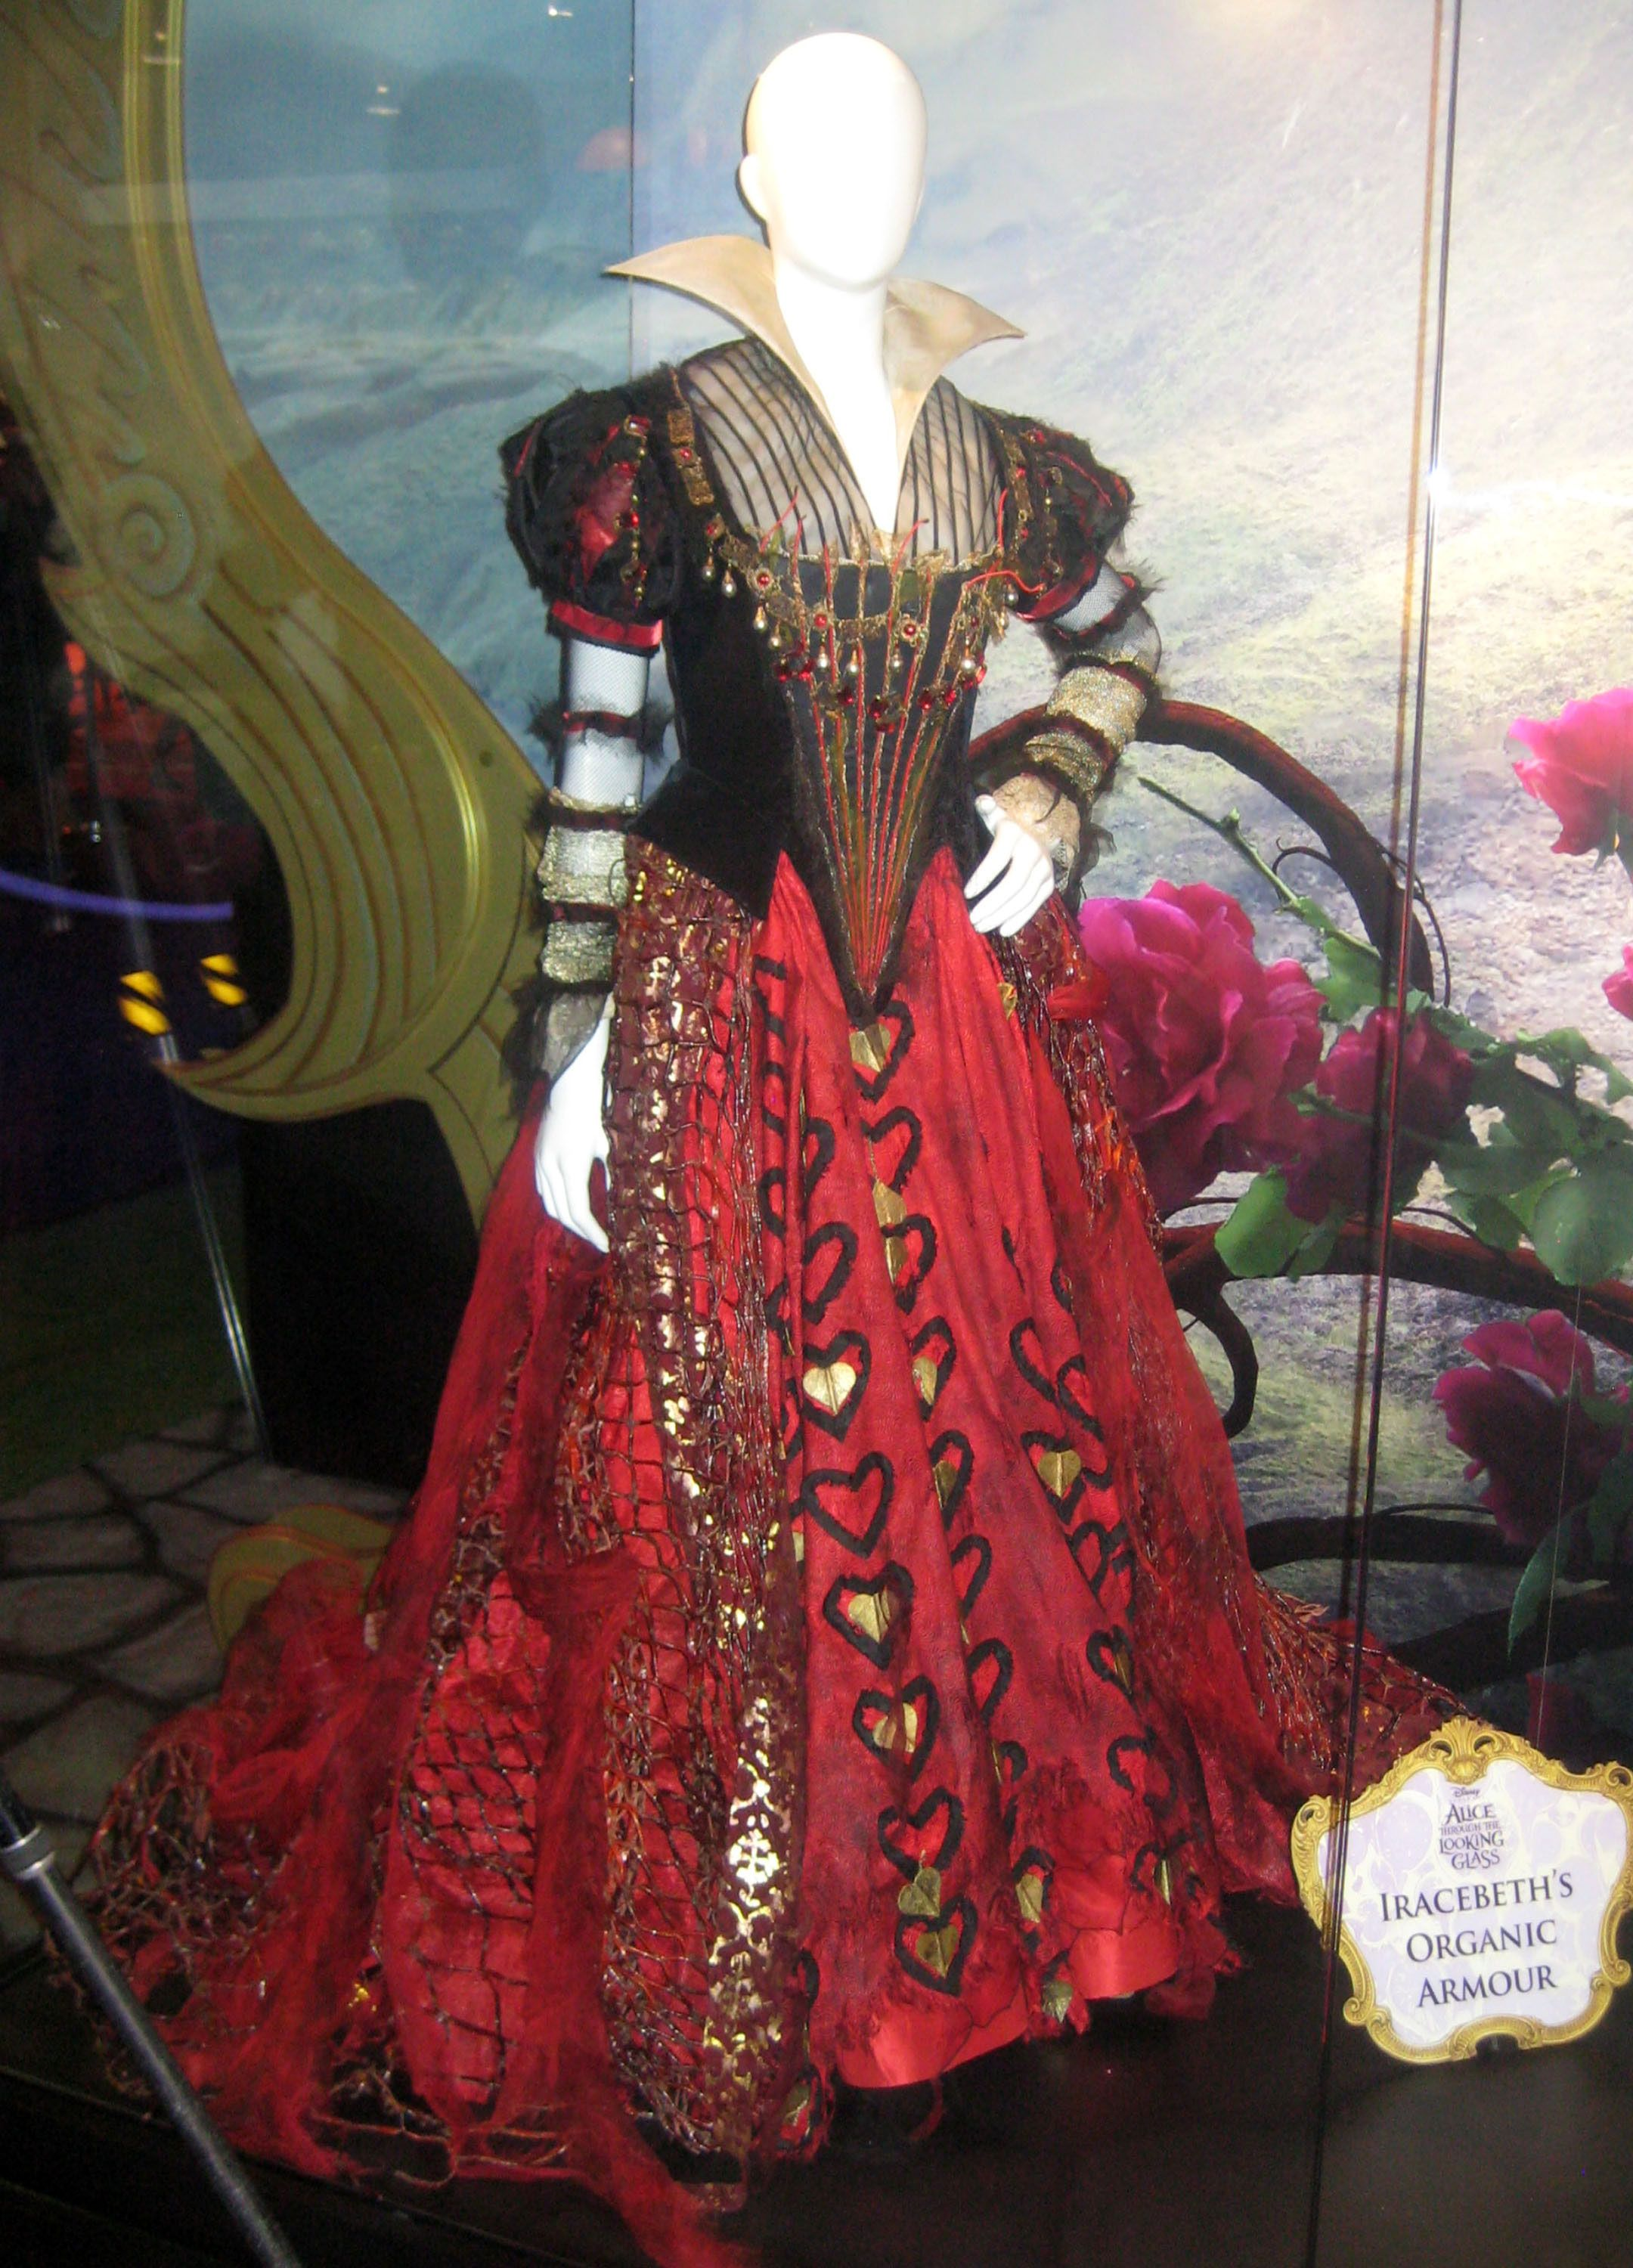 Iracebeth's organic armor from Alice Through the Looking Glass. Looks fantastic! # ...